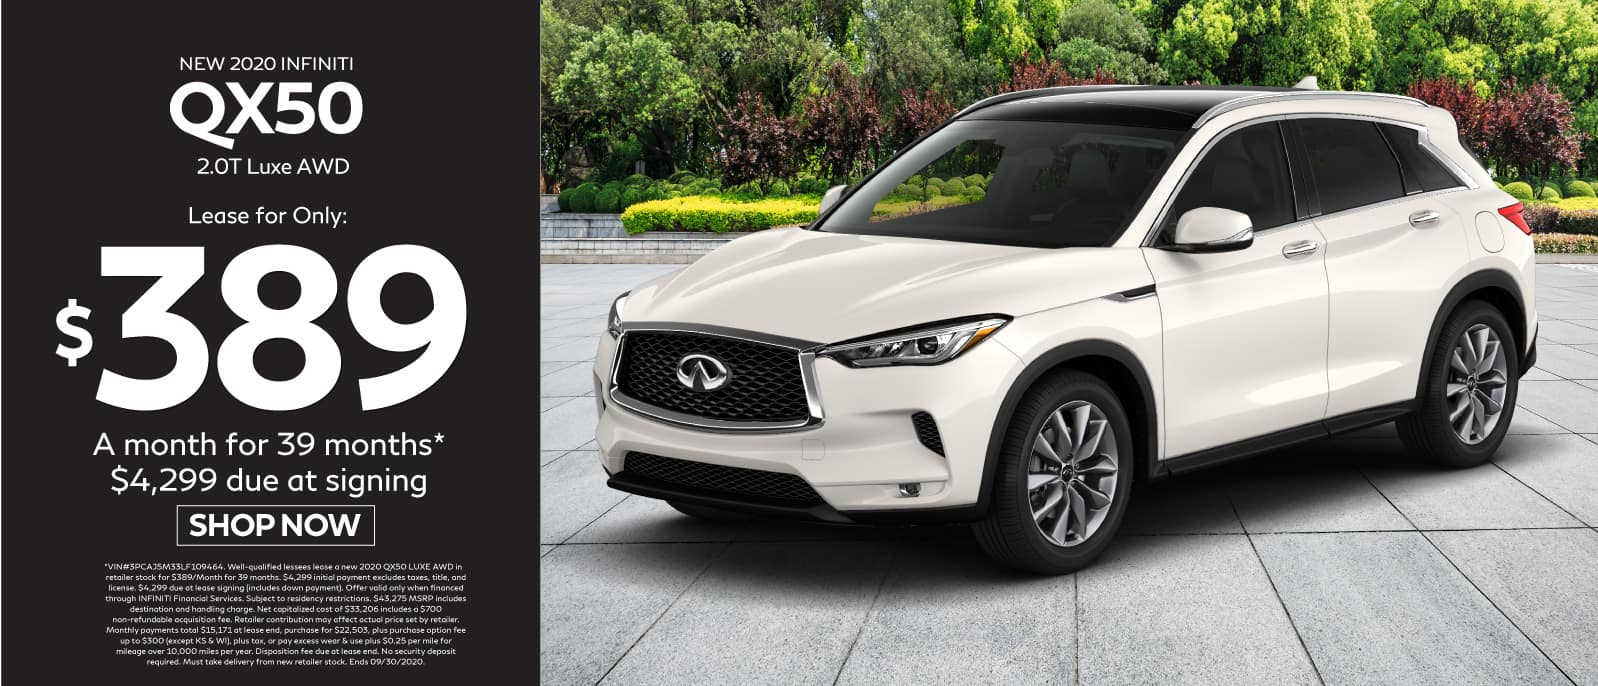 2020 INFINITI QX50 Lease for $389 for 39 months $4299 due at signing. Shop now.